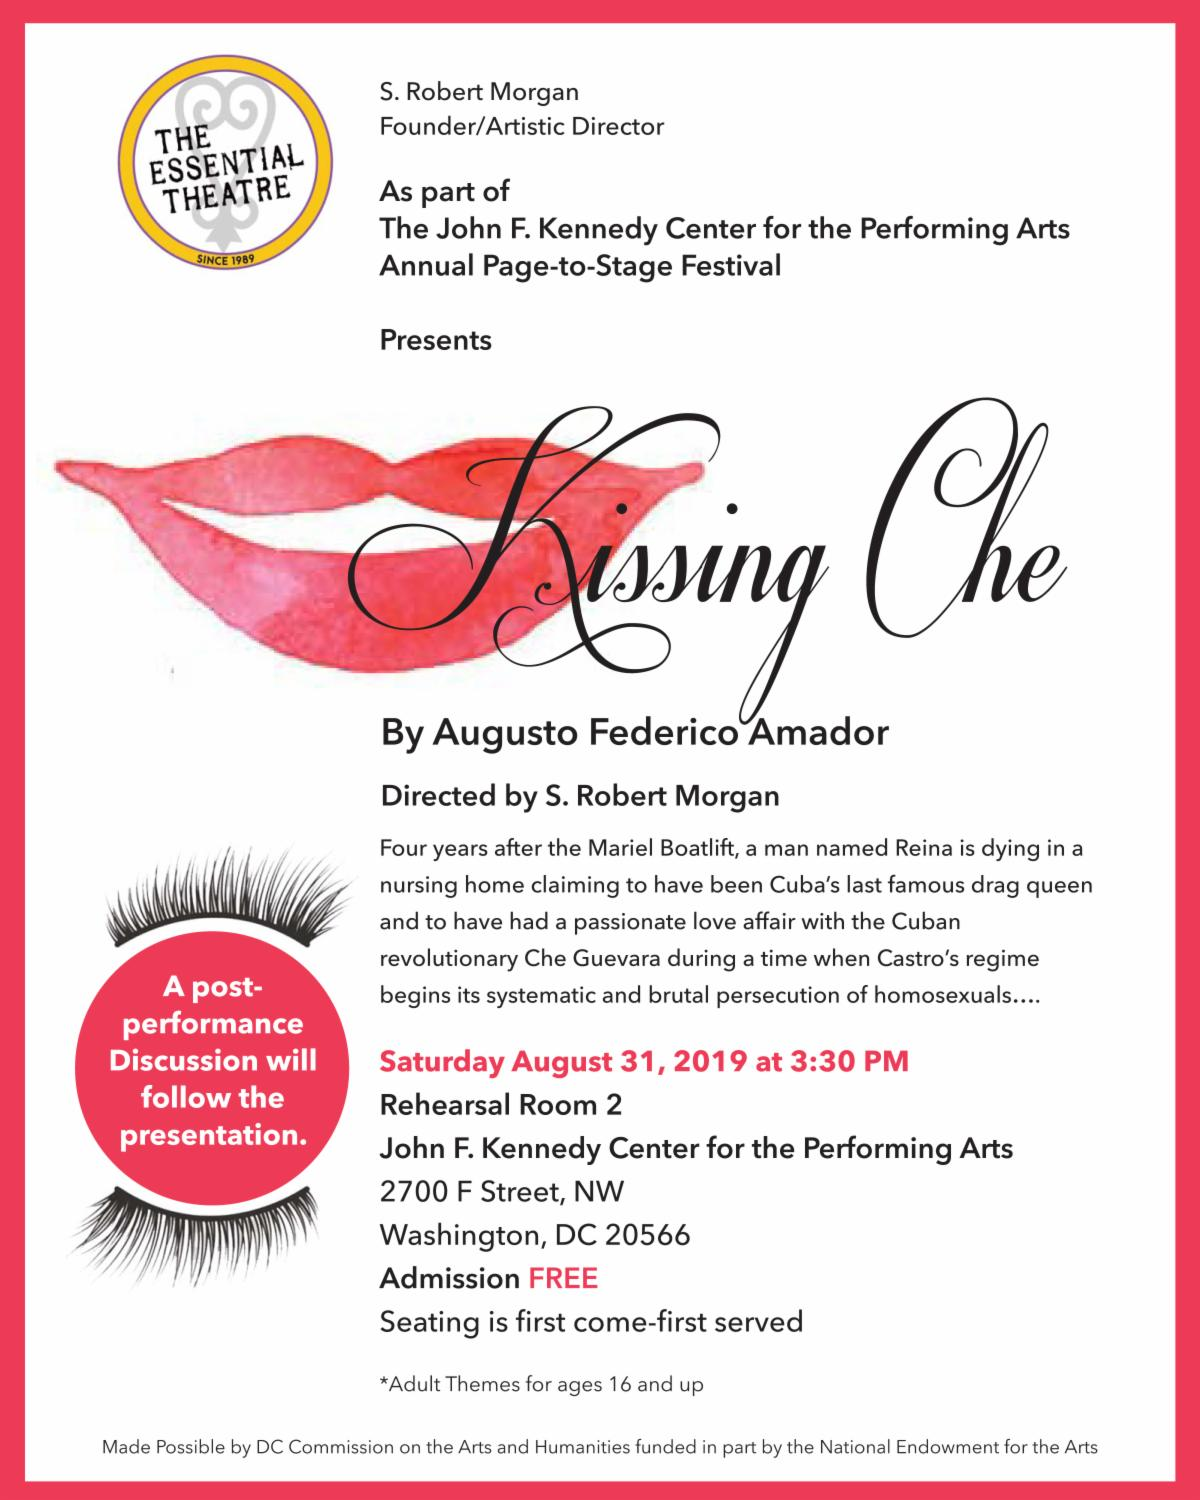 The Essential Theatre Presents Kissing Che By Augusto Federico Amador Directed by S  Robert Morgan Saturday August 31 2019 at 3 30 PM Rehearsal Room 2 John F Kennedy Center for the Performing Arts 2700 F Street NW Washington DC 20566 Admission FREE